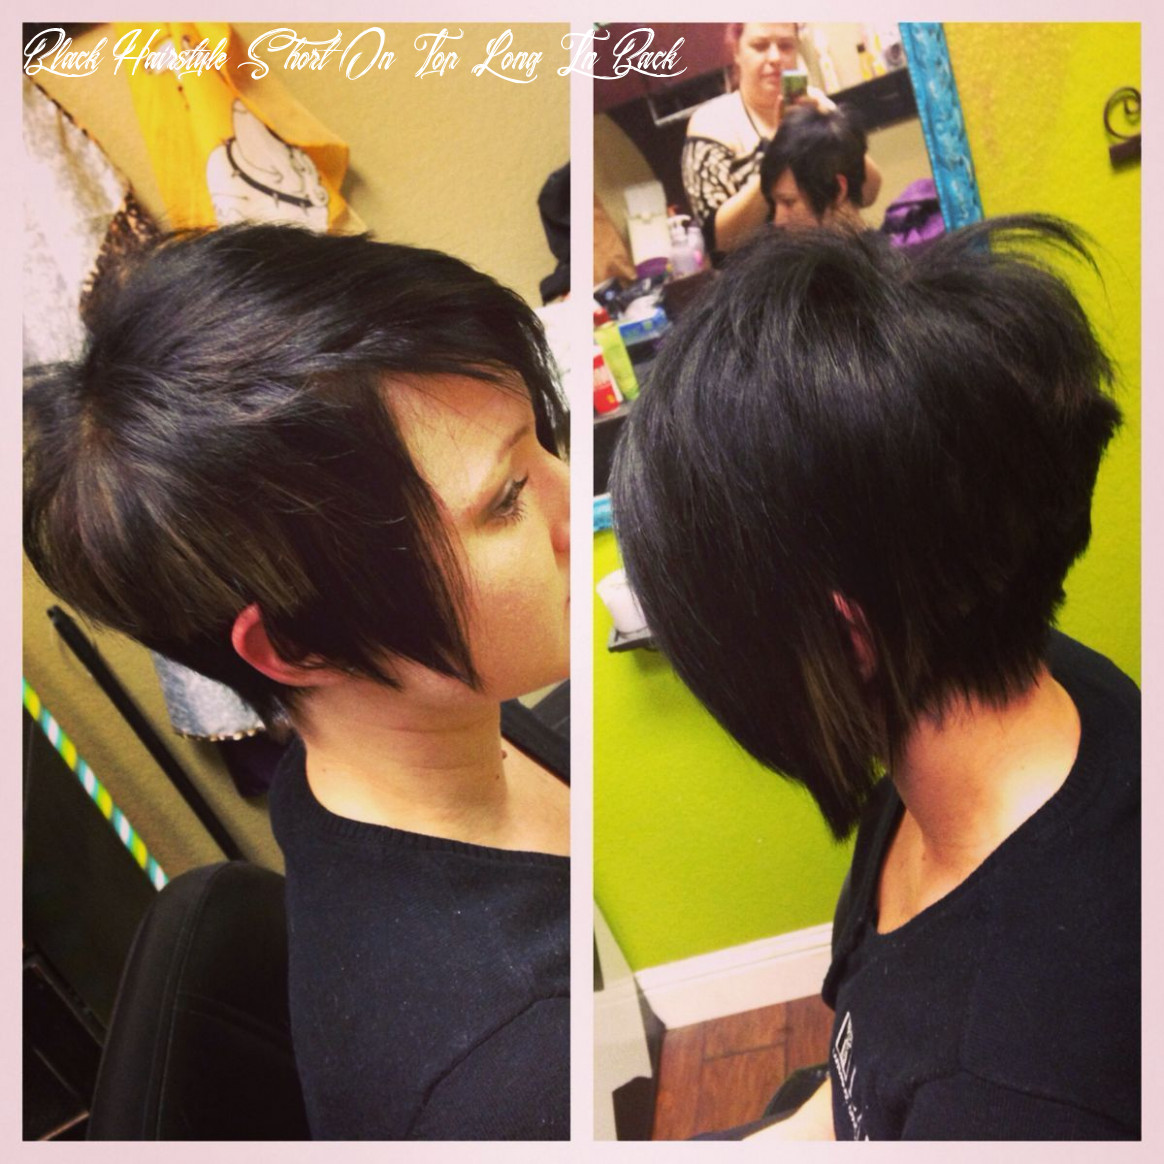 Pin on black hairstyles black hairstyle short on top long in back